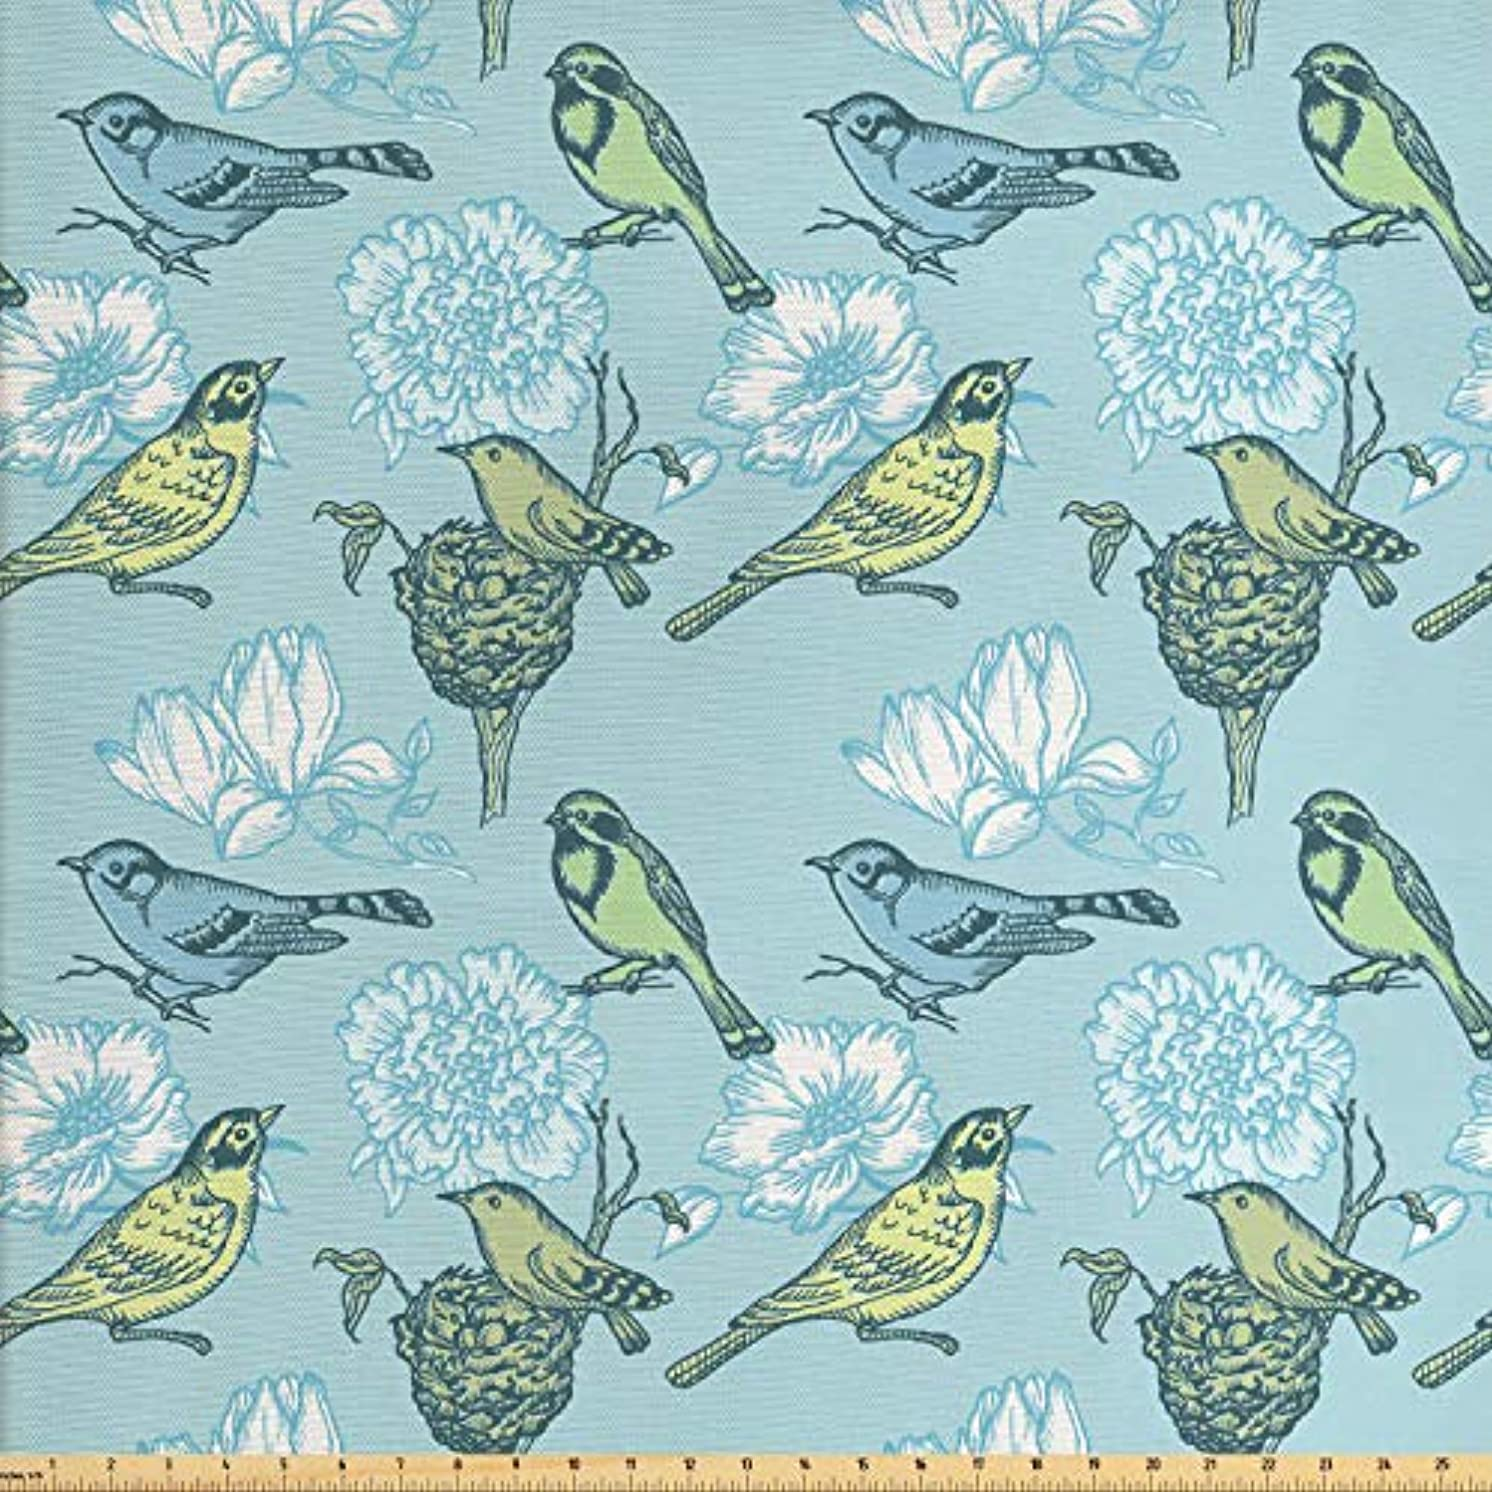 Lunarable Birds Fabric by The Yard, Mother Bird and Her Eggs Resting in The Nest on Abstract Floral Background, Decorative Fabric for Upholstery and Home Accents, 1 Yard, Pale Green Pale Blue